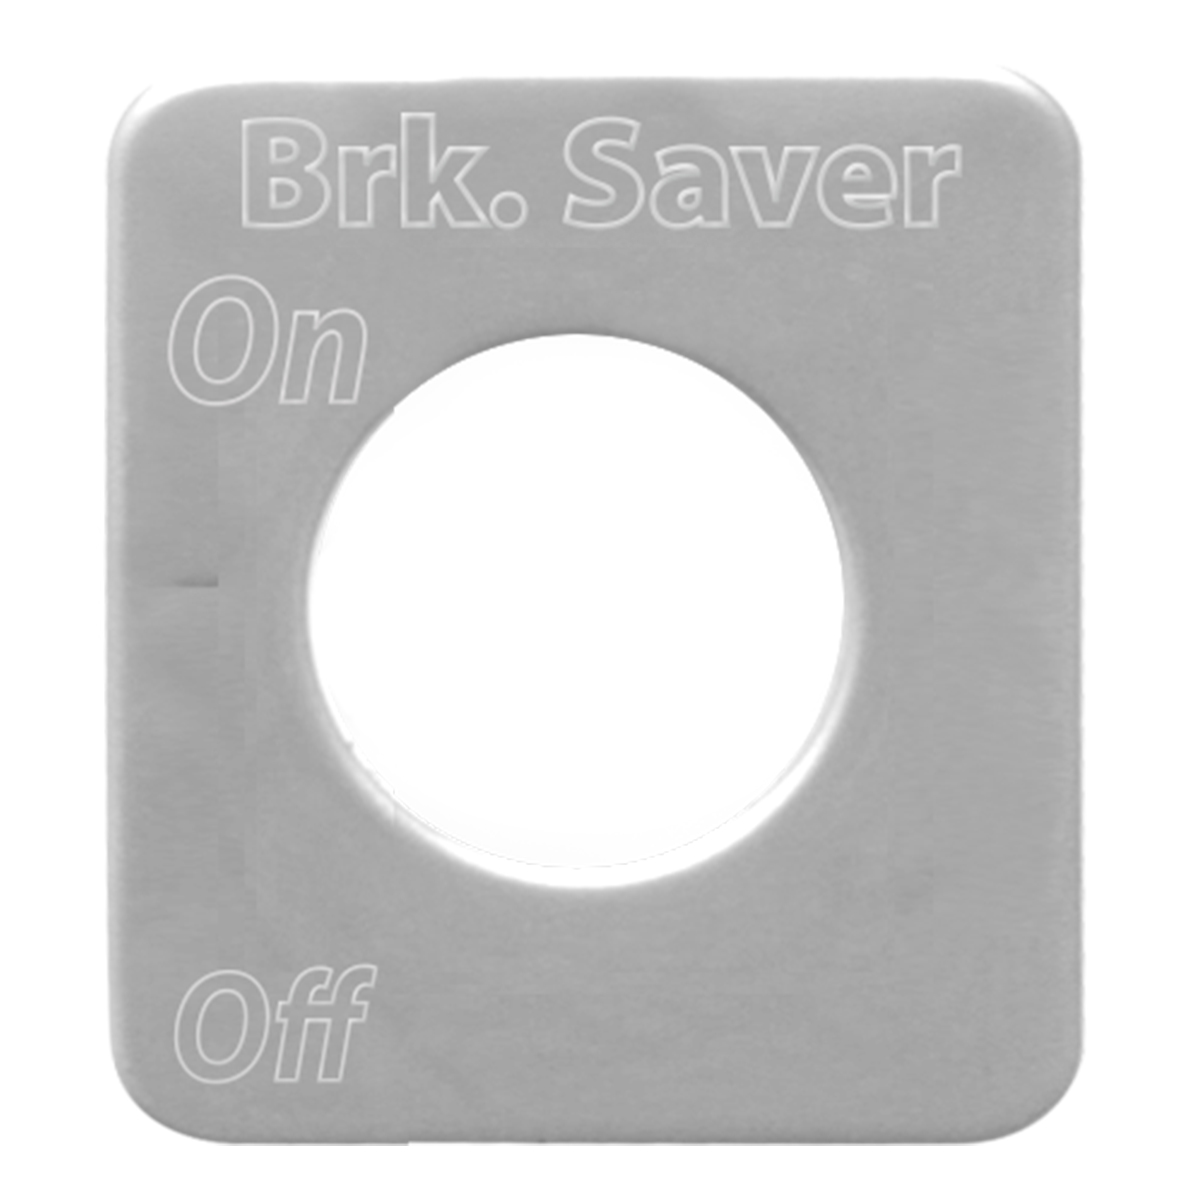 68605 Stainless Steel Brake Saver Switch Plate for KW